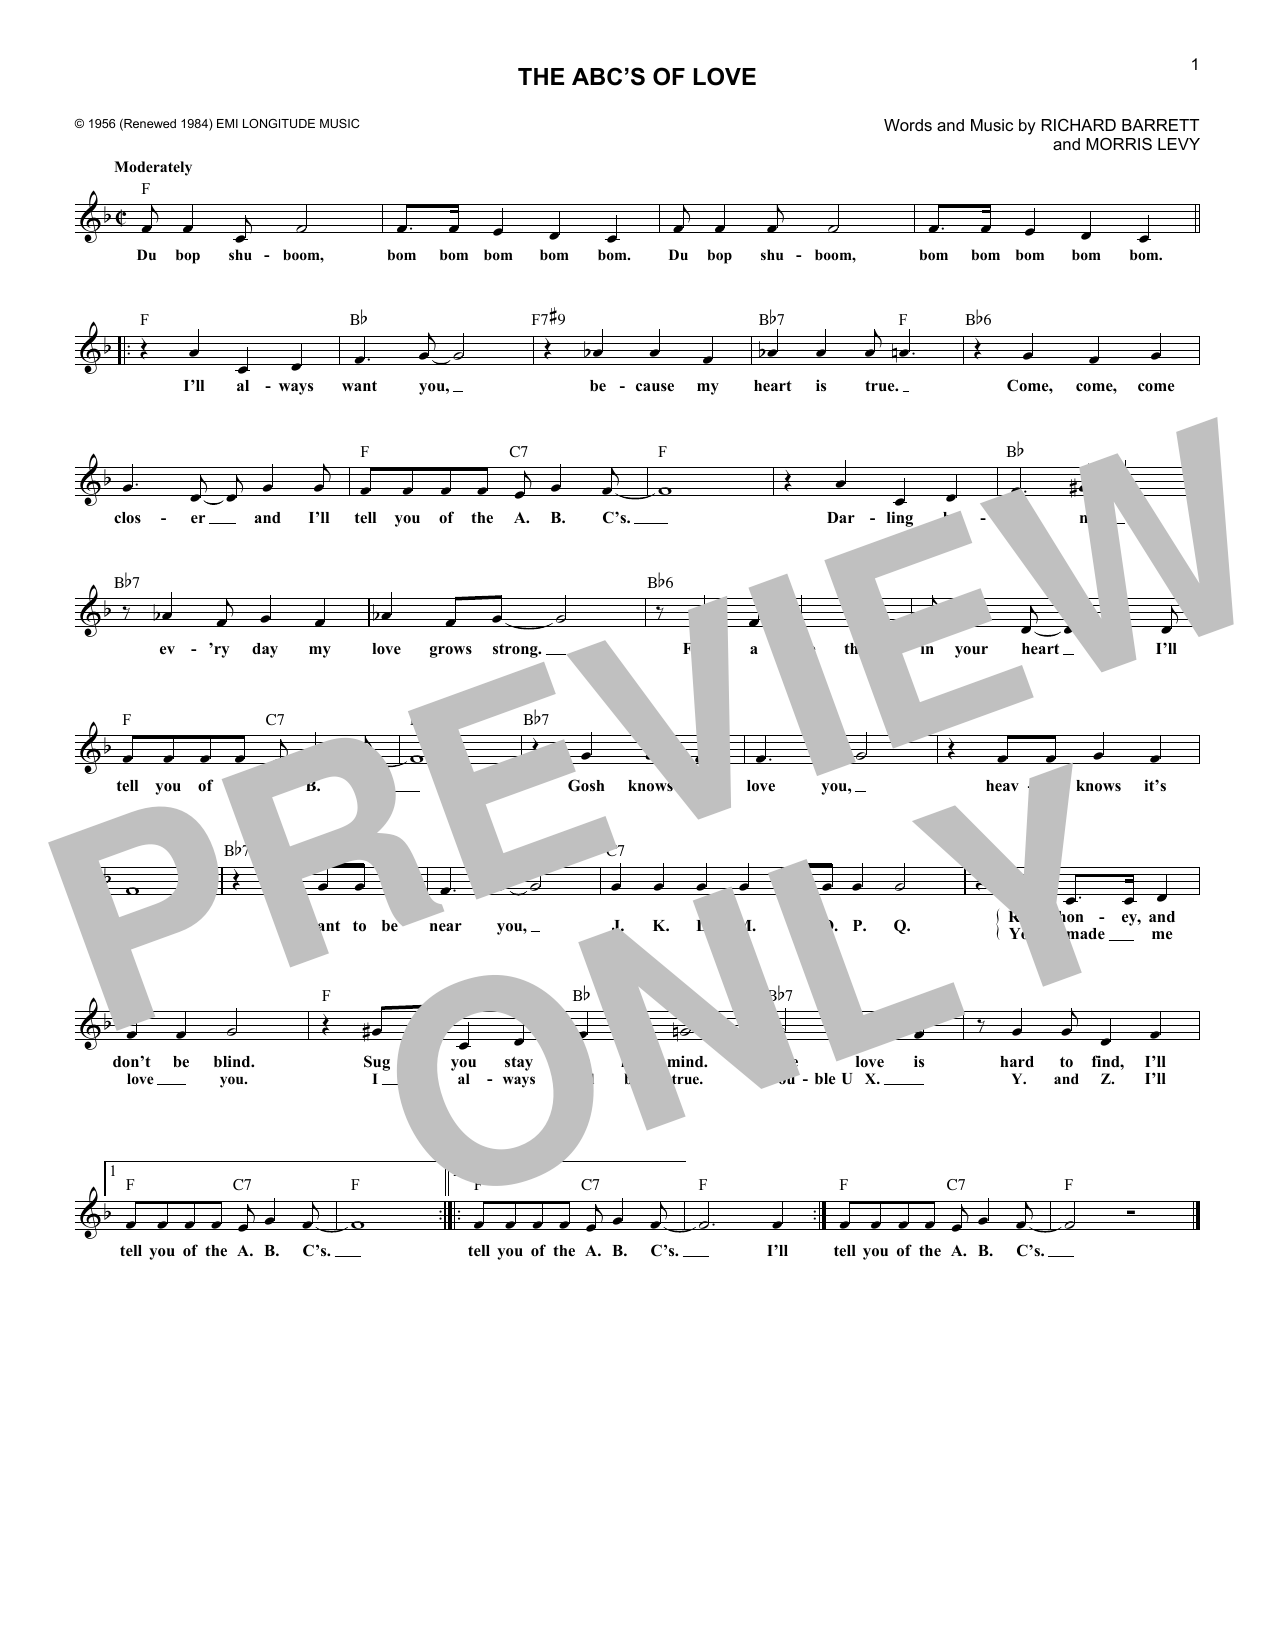 Frankie Lyman & The Teenagers The ABC's Of Love sheet music notes and chords. Download Printable PDF.